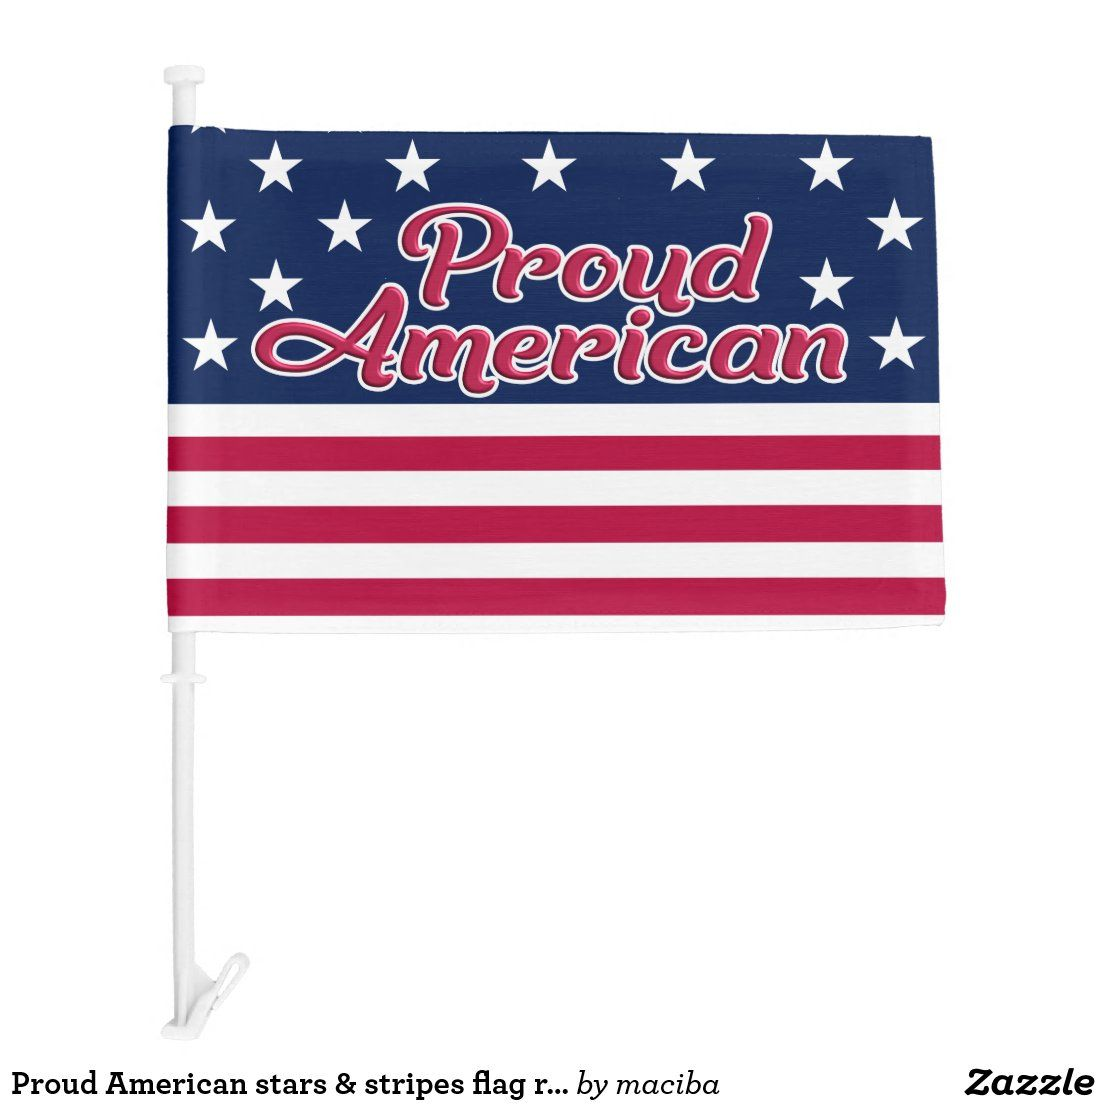 Proud American Stars Stripes Flag Red Blue White Zazzle Com In 2020 Red And Blue Blue And White Red White Blue